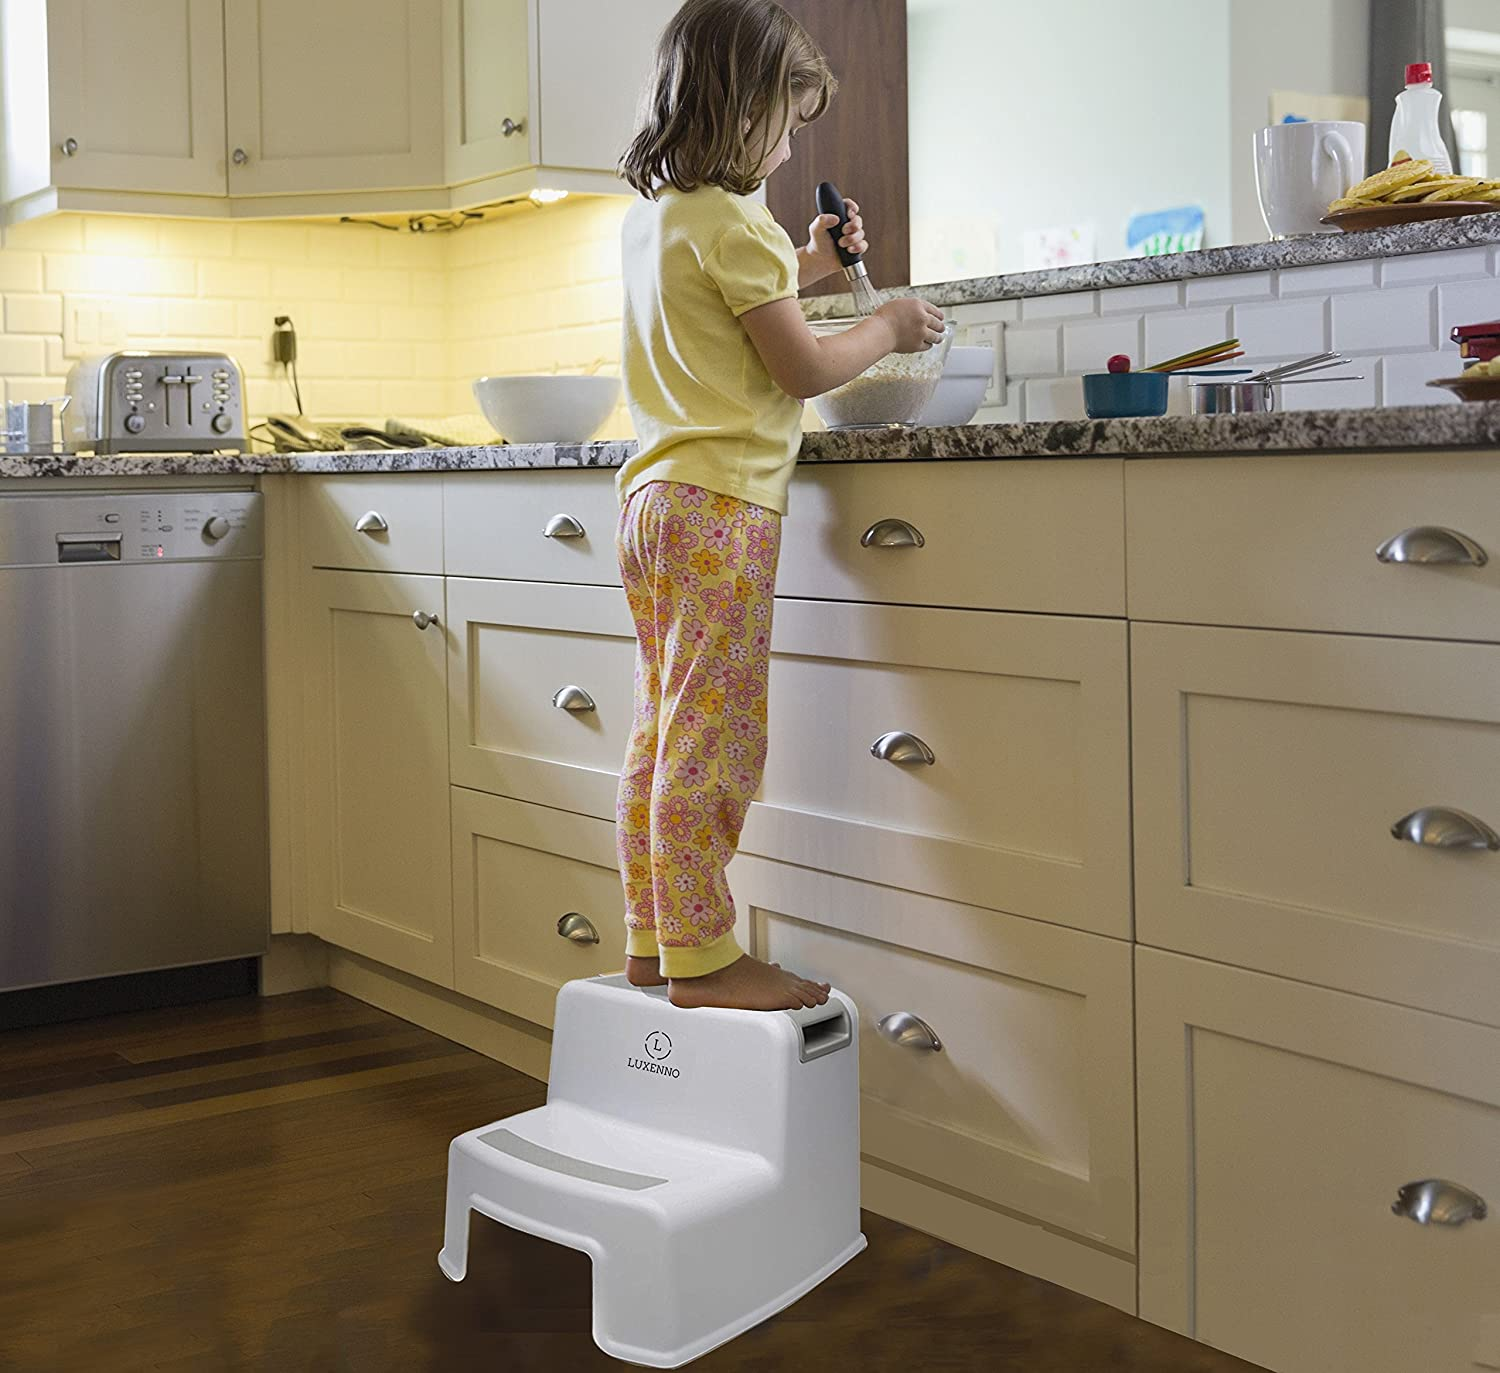 (2 Pack) Dual Height Step Stool für Toddlers & Kids, Nursery Step Stool Potty Training Stool für Bathroom, Kitchen, Two-Step Design mit Soft No-Slip Grips und Safe, White & Grey, durch Luxenno